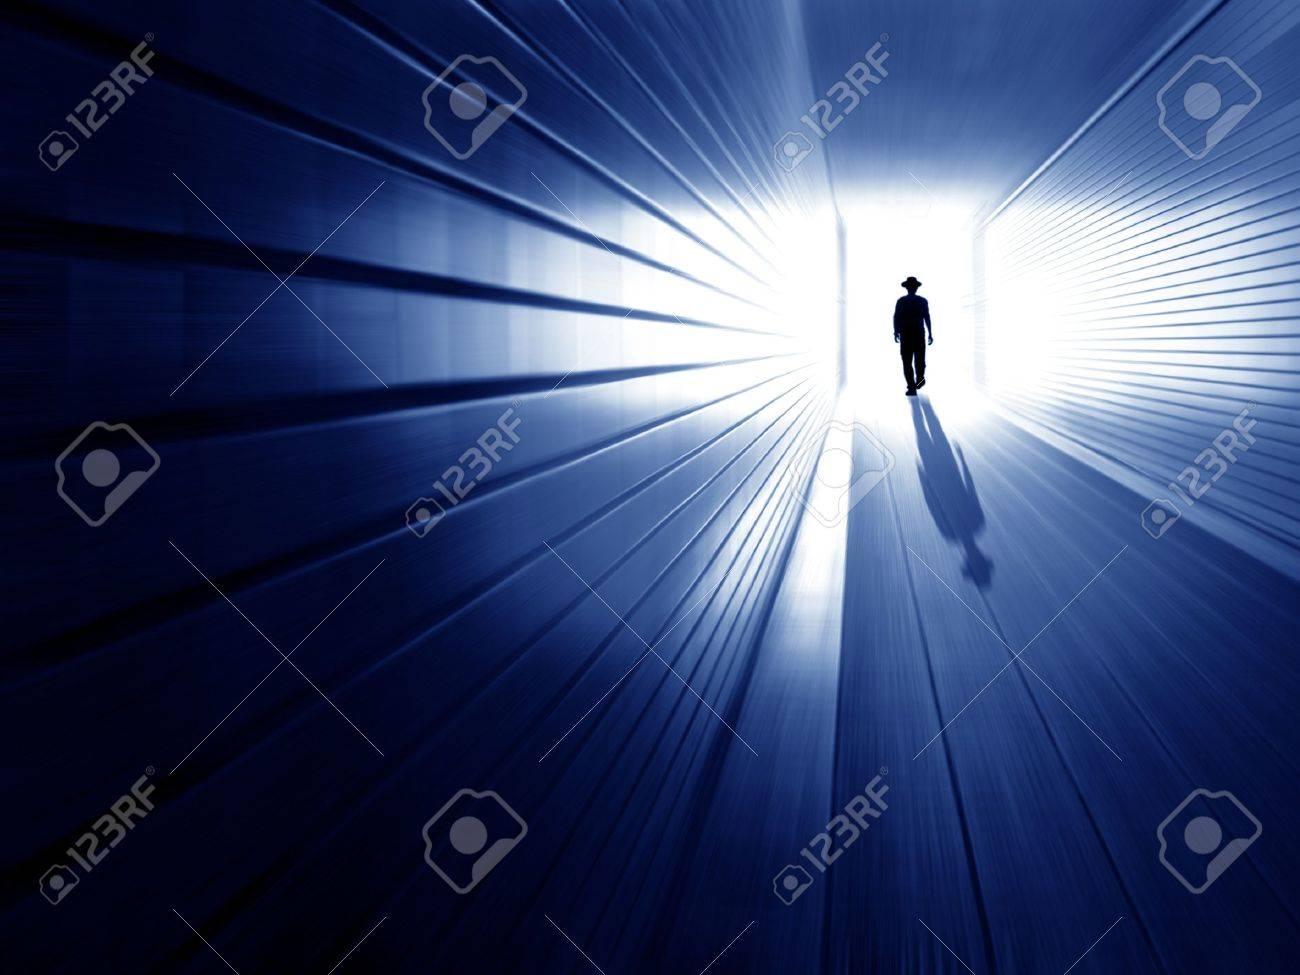 silhouette in a subway tunnel  Light at End of Tunnel Stock Photo - 12721249